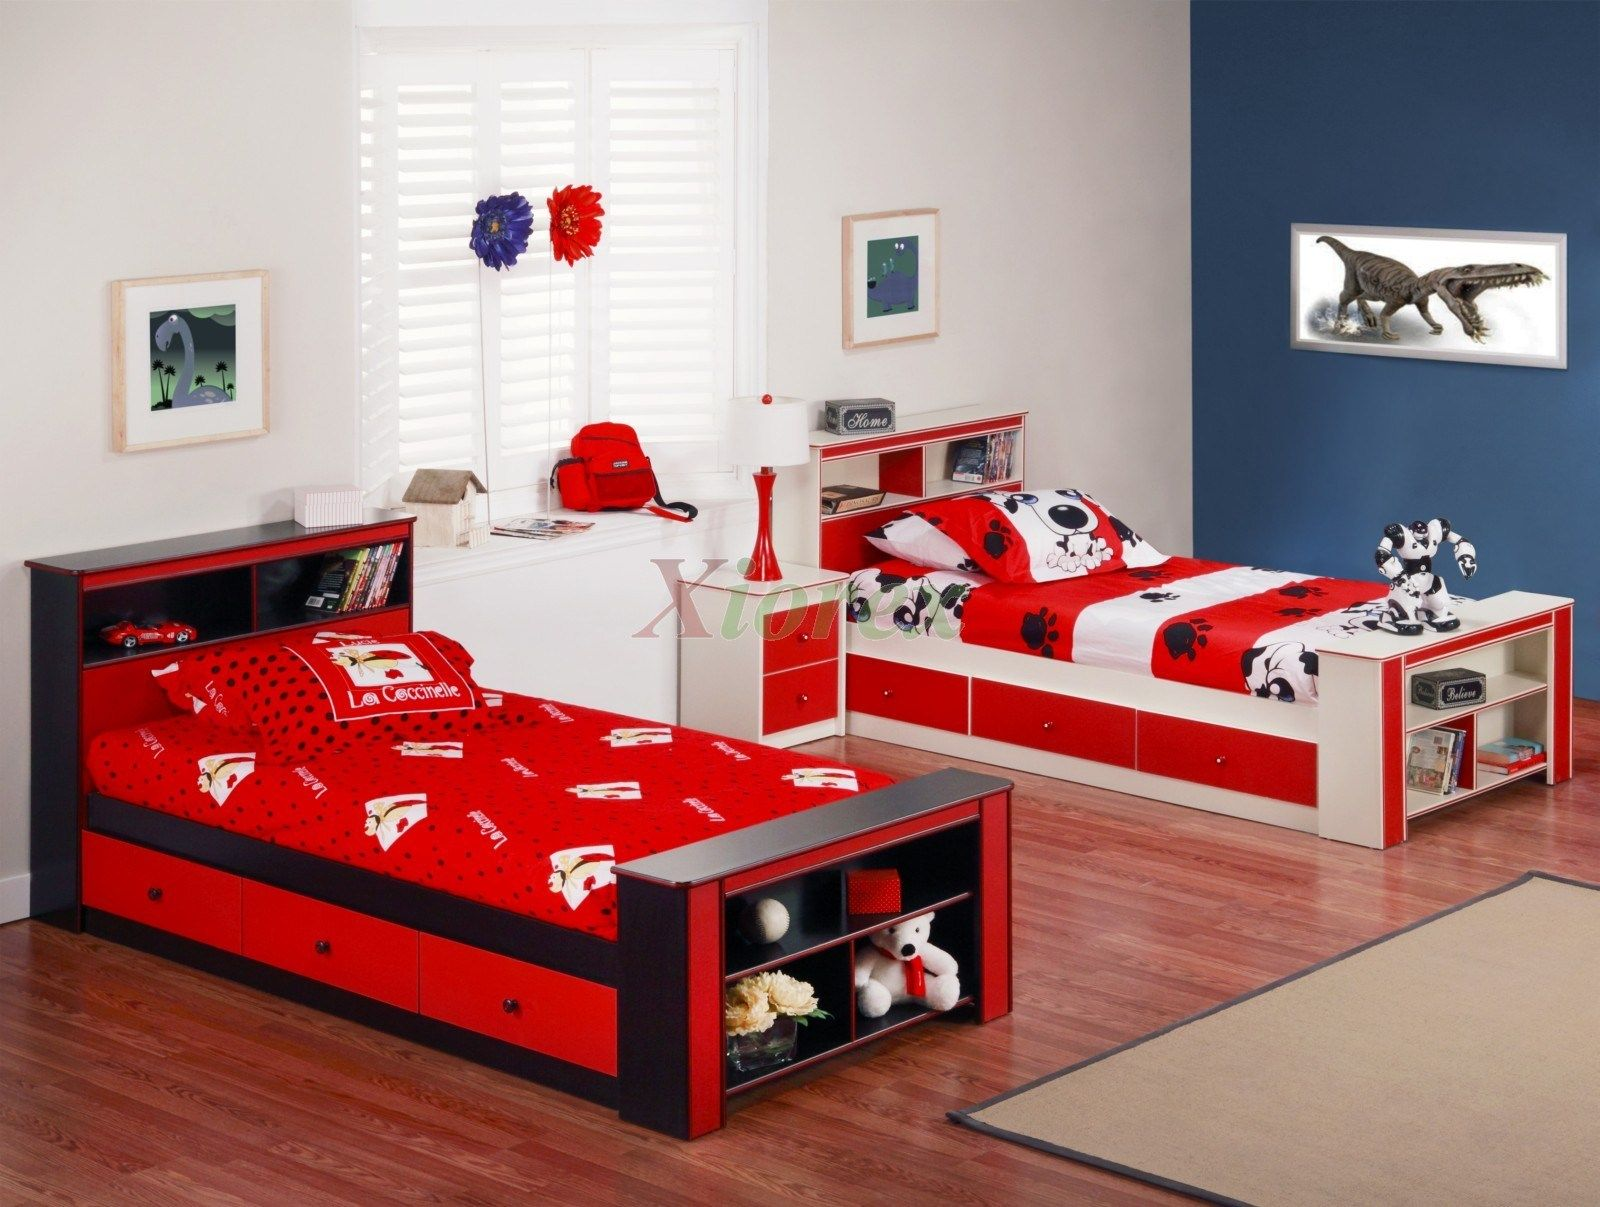 30 Wonderful Image of Kids Bedroom Furniture Boys | Kids ...